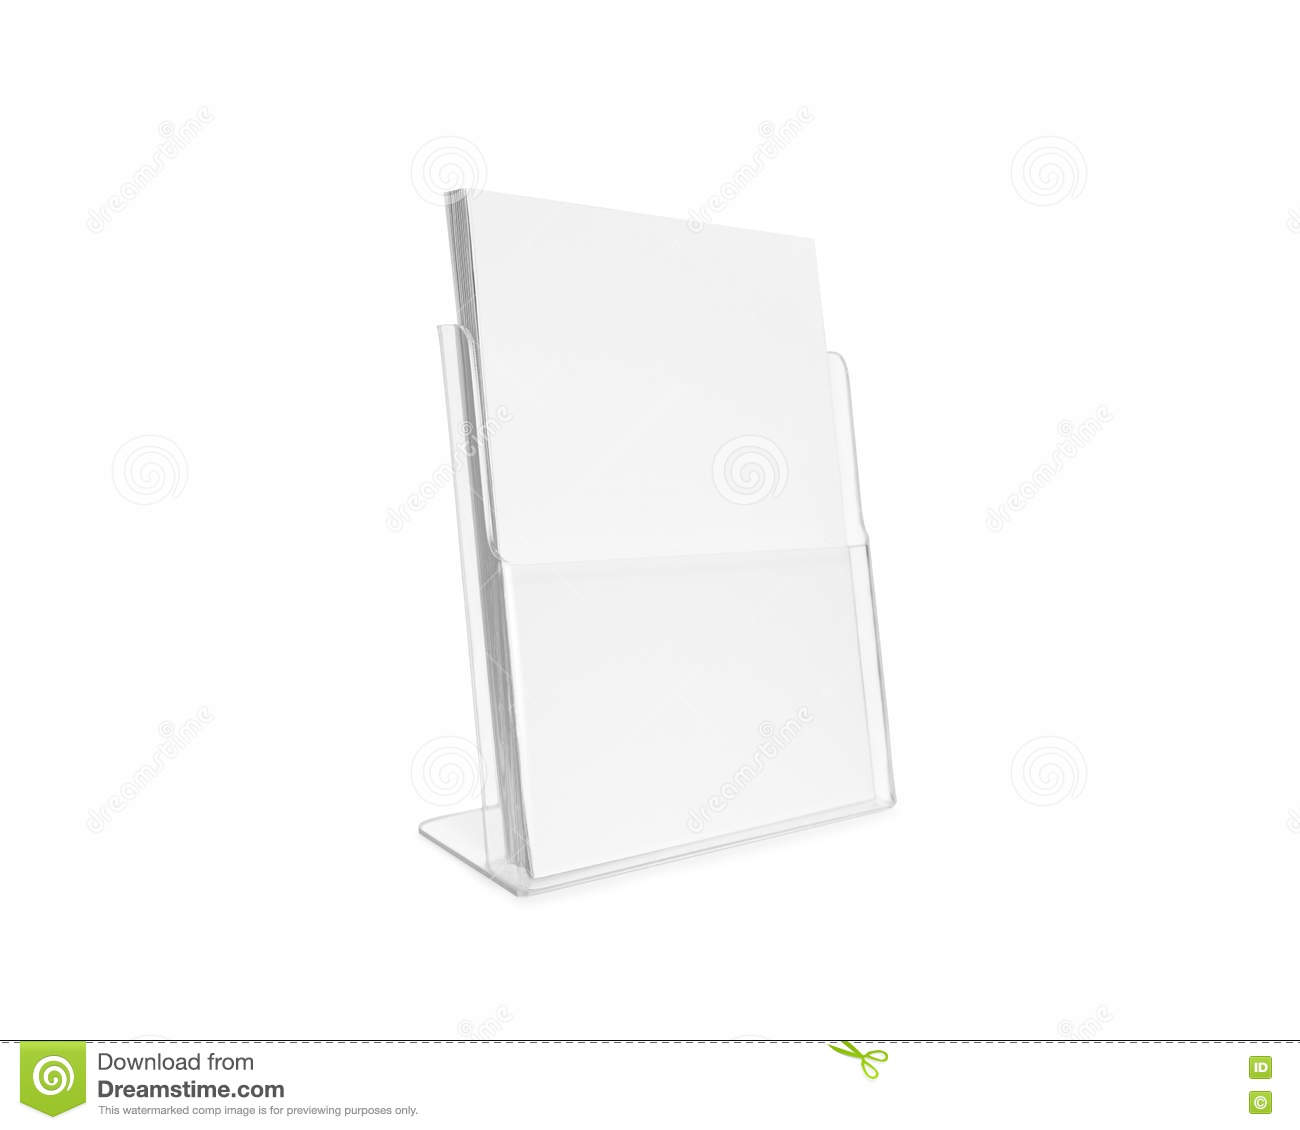 Blank flyer mockup glass plastic transparent holder for Cardboard brochure holder template